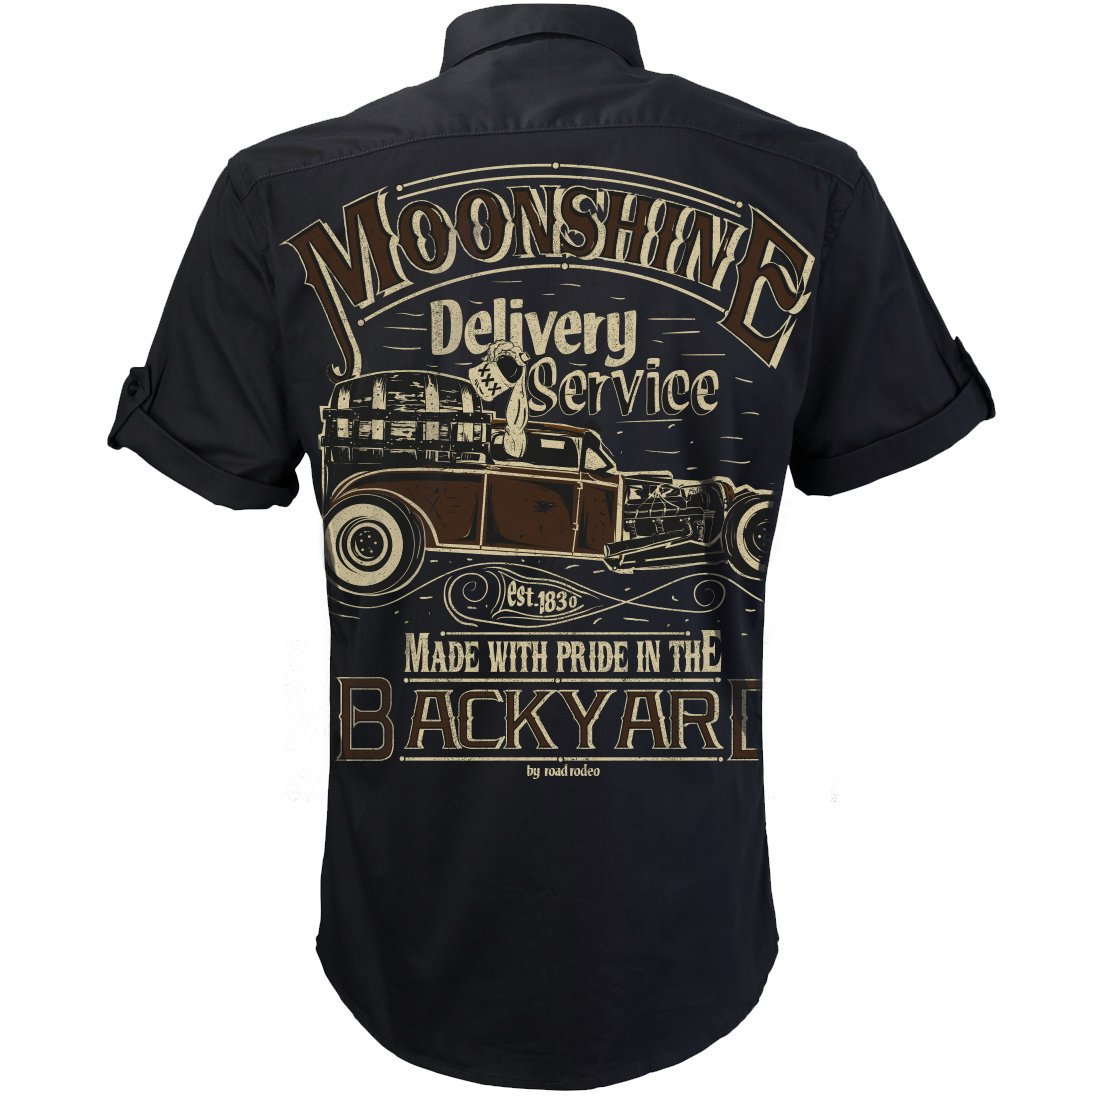 V8 Rock and Roll Rockabilly,Mechanic Work Shirt Moonshine Delivery Booze